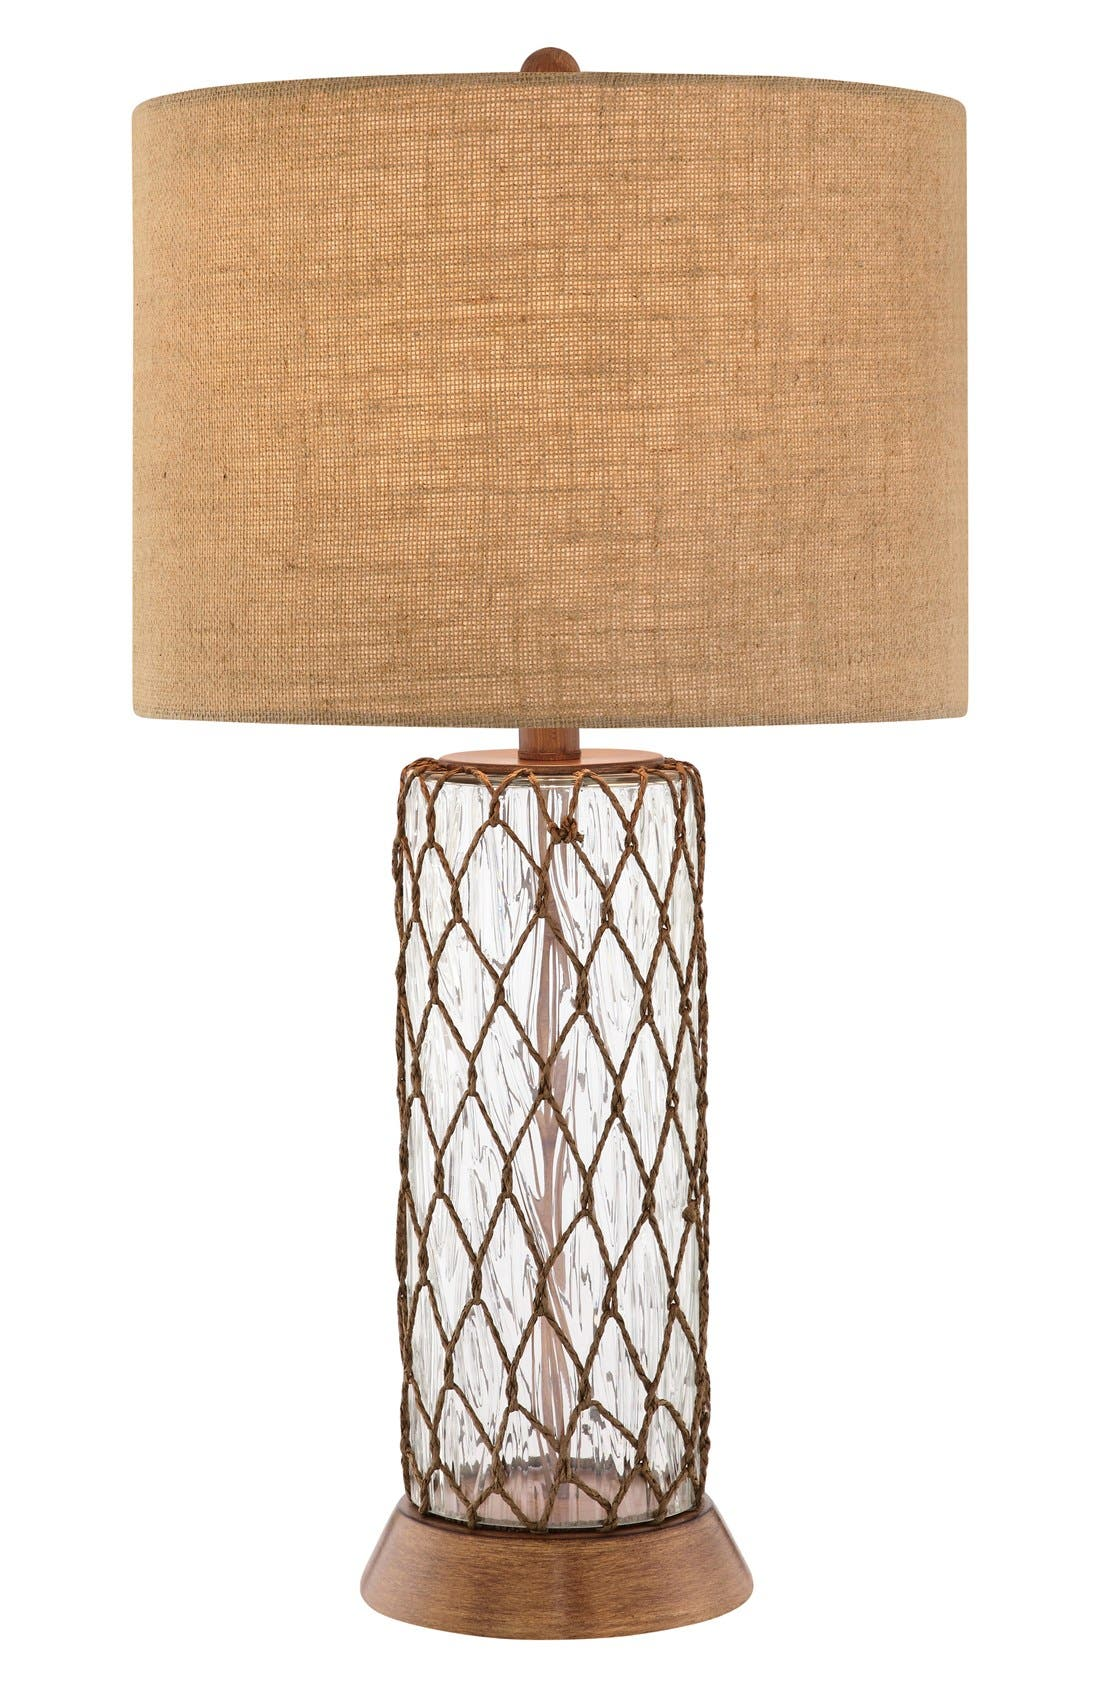 Clear Glass Table Lamp,                             Main thumbnail 1, color,                             Clear Glass/ Bronze Finish